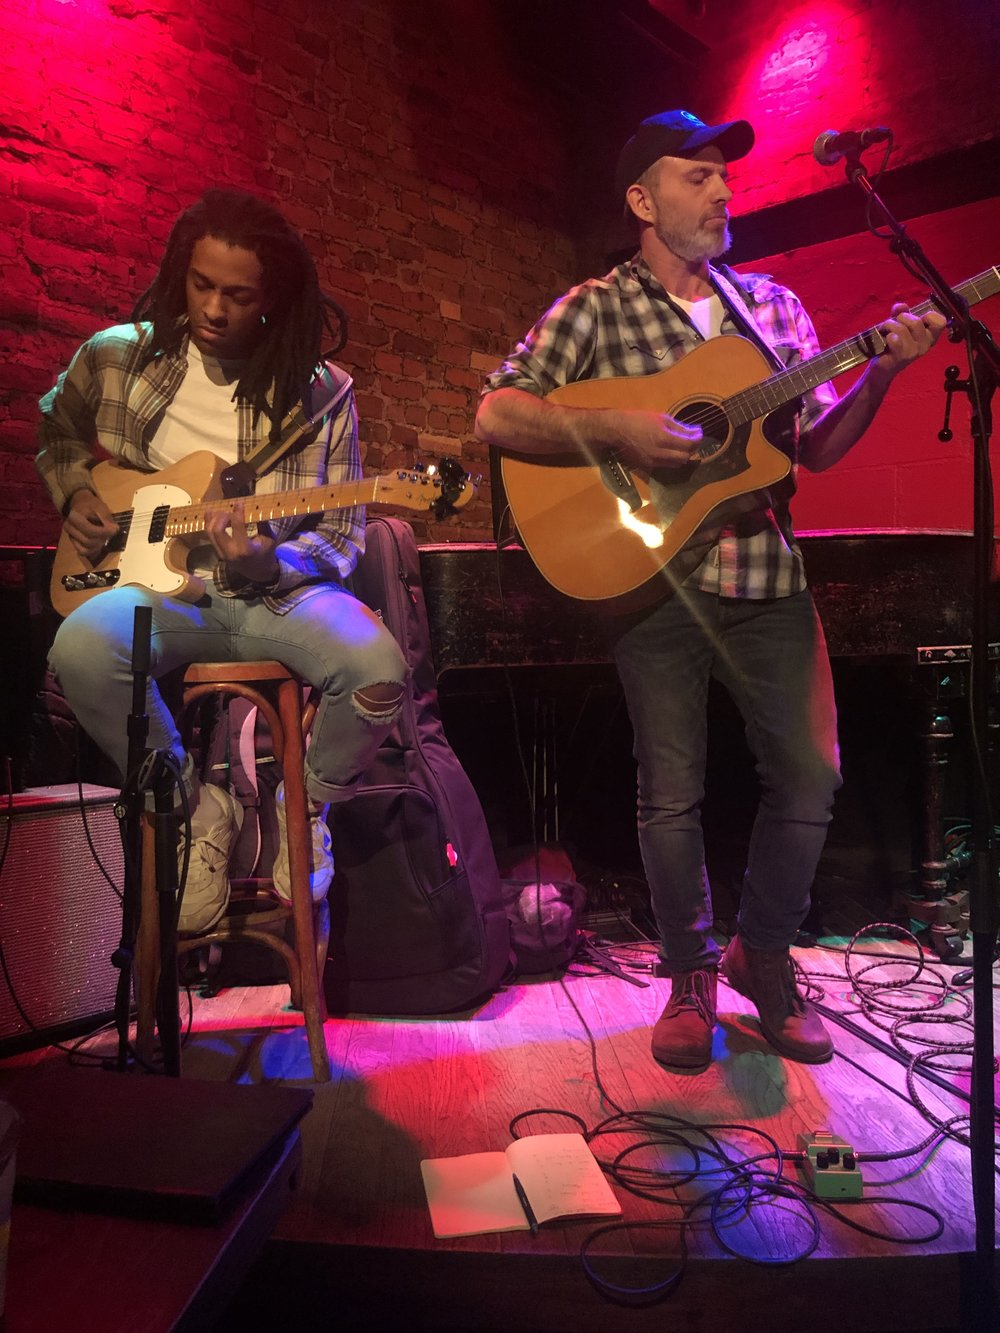 May 21 Rockwood Music Hall.New York, NY. 7PM - With guitarist Franklin Rankin